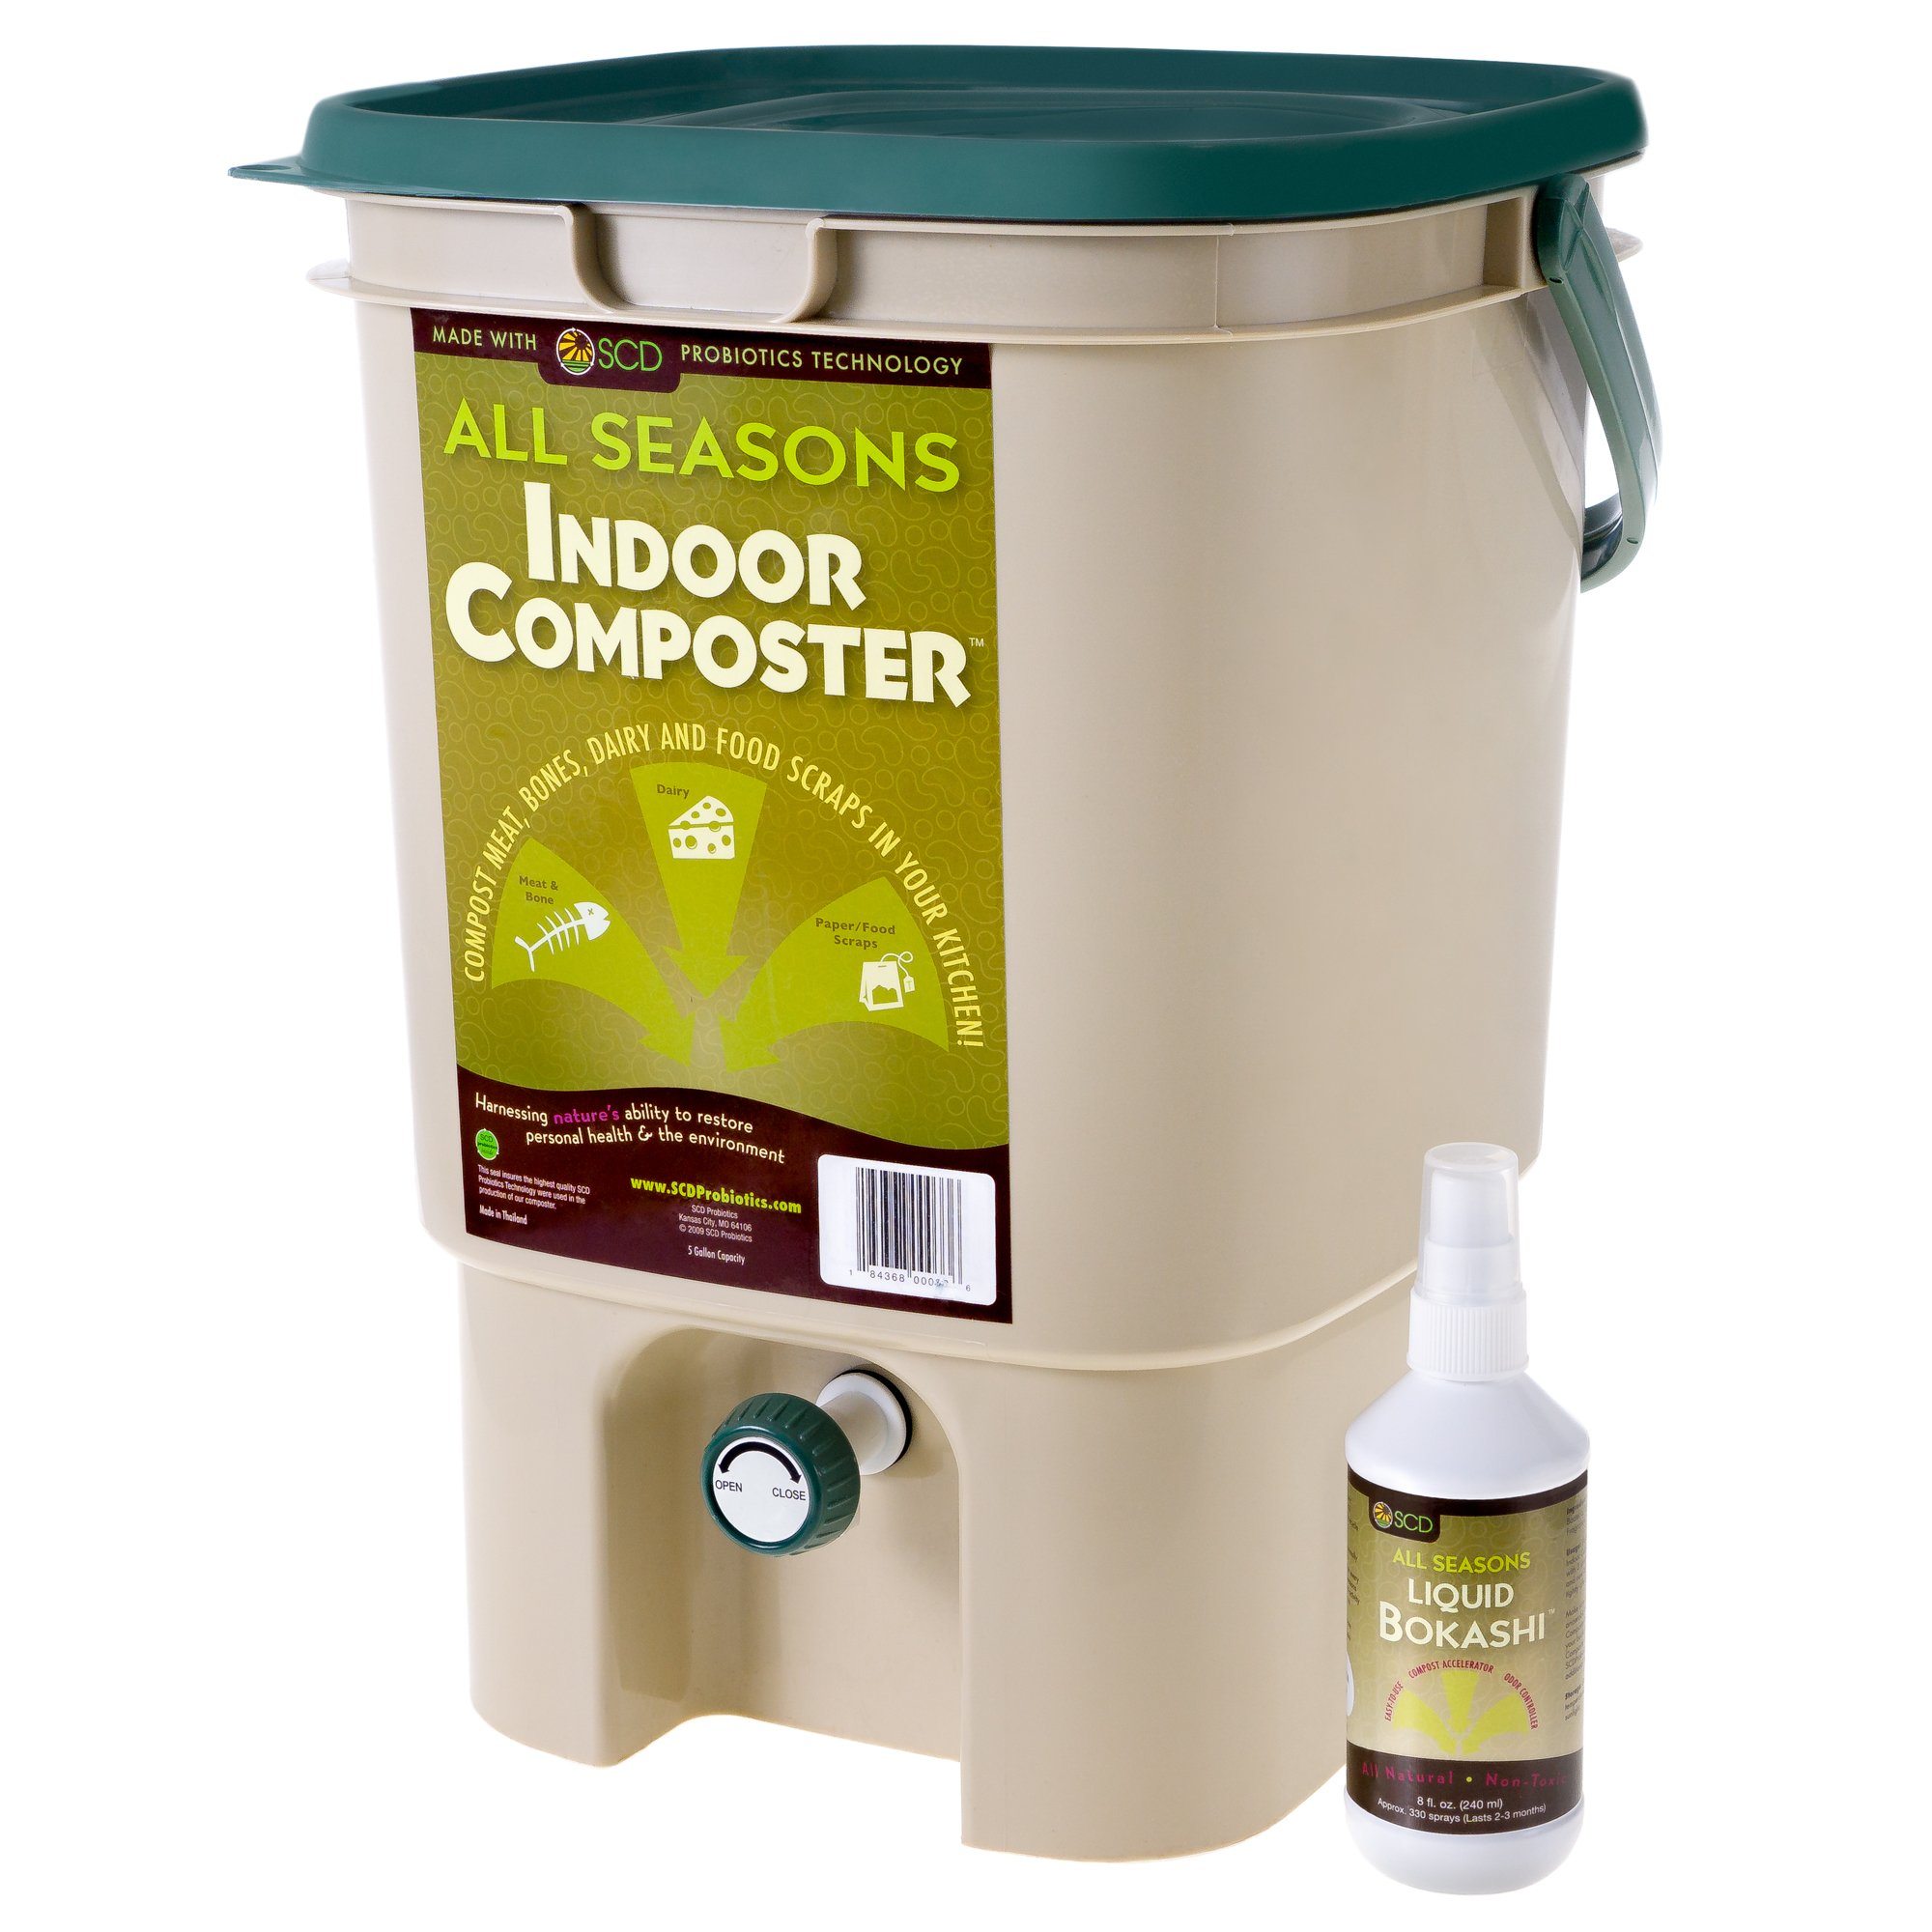 SCD Probiotics K200 All Seasons Indoor Composter Kit, Tan Bucket - 8 oz Liquid Bokashi